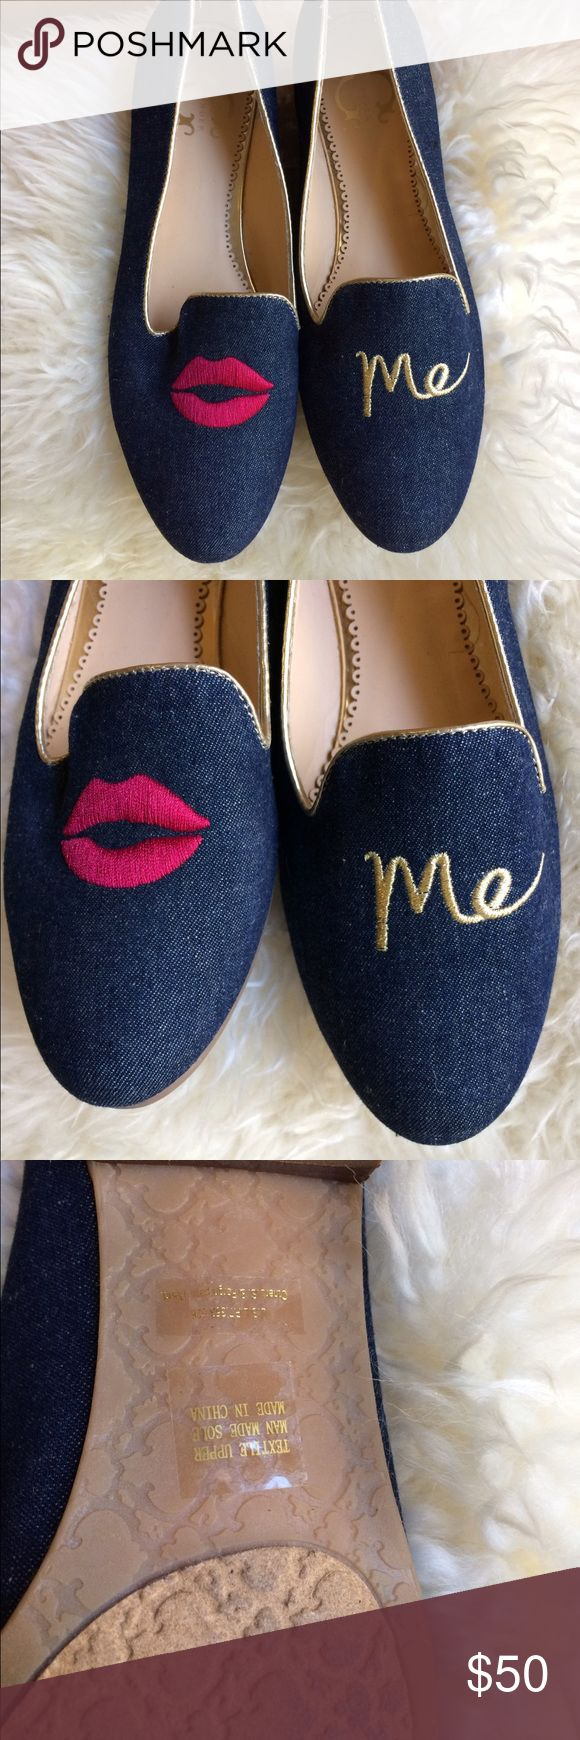 Like New C Wonder 'Kiss Me' Loafer Flats Sz 6.5 Like new only worn twice C Wonder Kiss Me Loafer Flats in Denim color with gold trim. So adorable! Happy shopping 💁 C Wonder Shoes Flats & Loafers